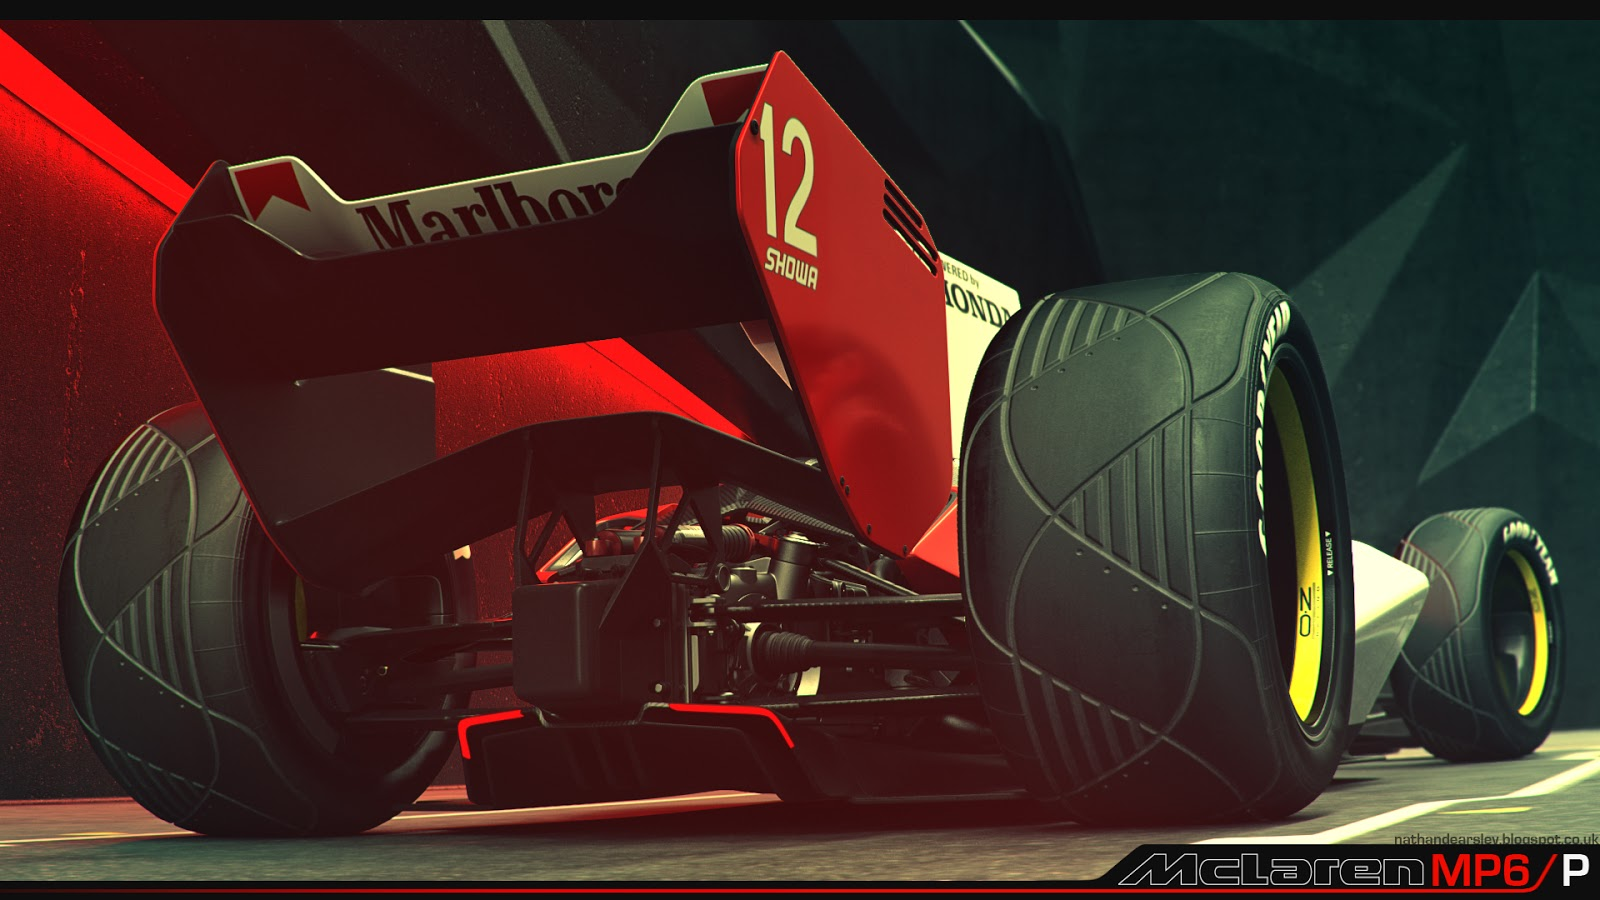 Mazda Race Car Wallpaper Formula 1 Cars From 2056 Might Look Like This We Want